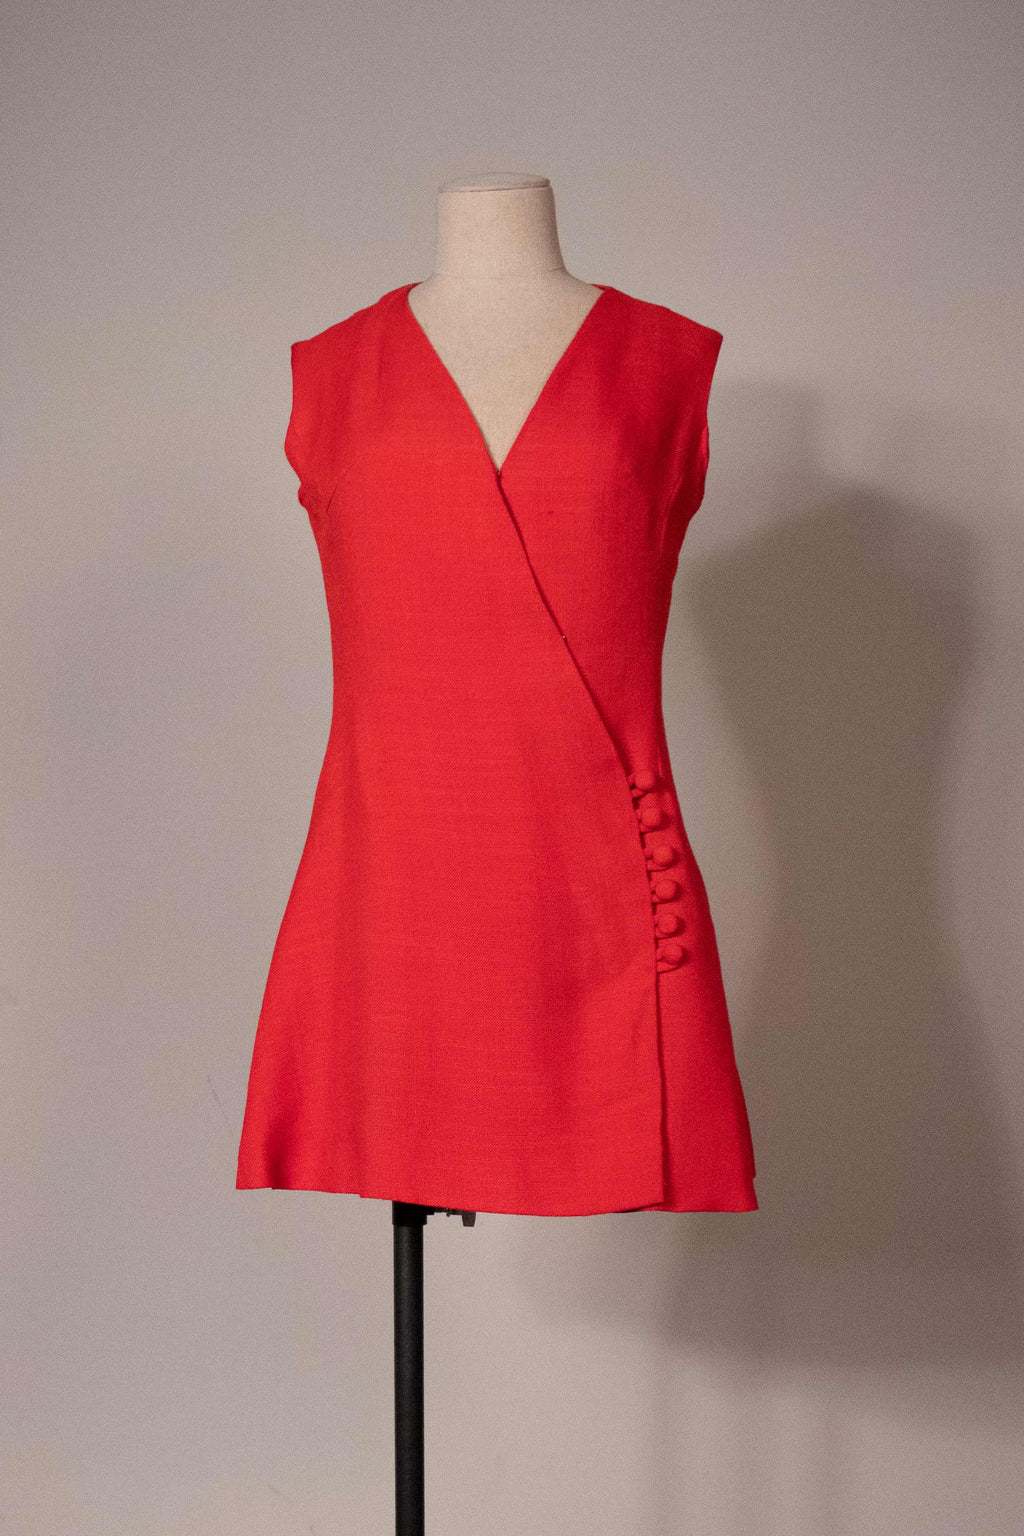 1960s red linen blend mini dress